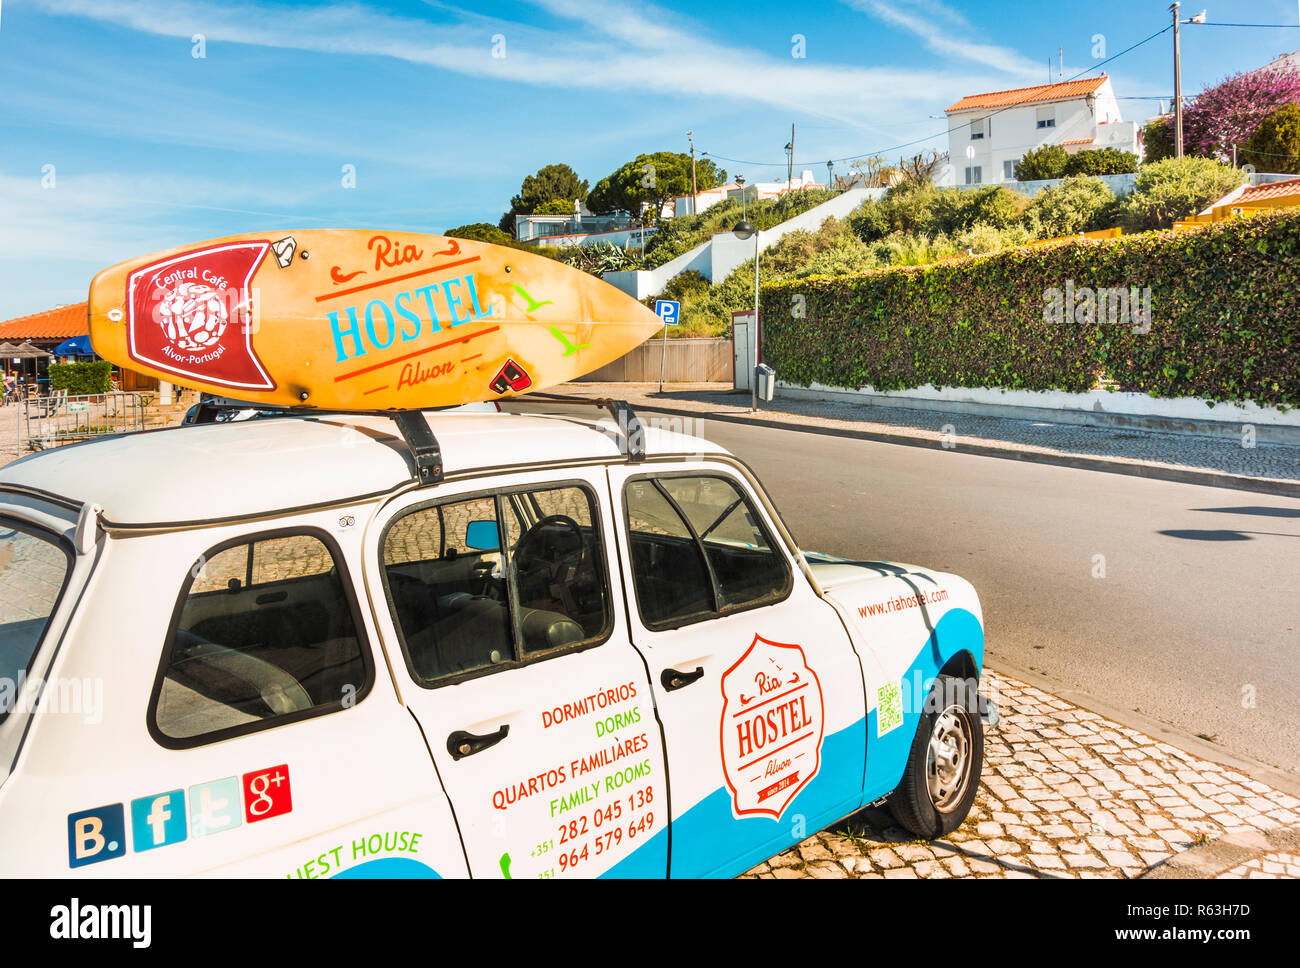 car with surfboard on the roof used as advertisement vehicle for ria hostel - Stock Image